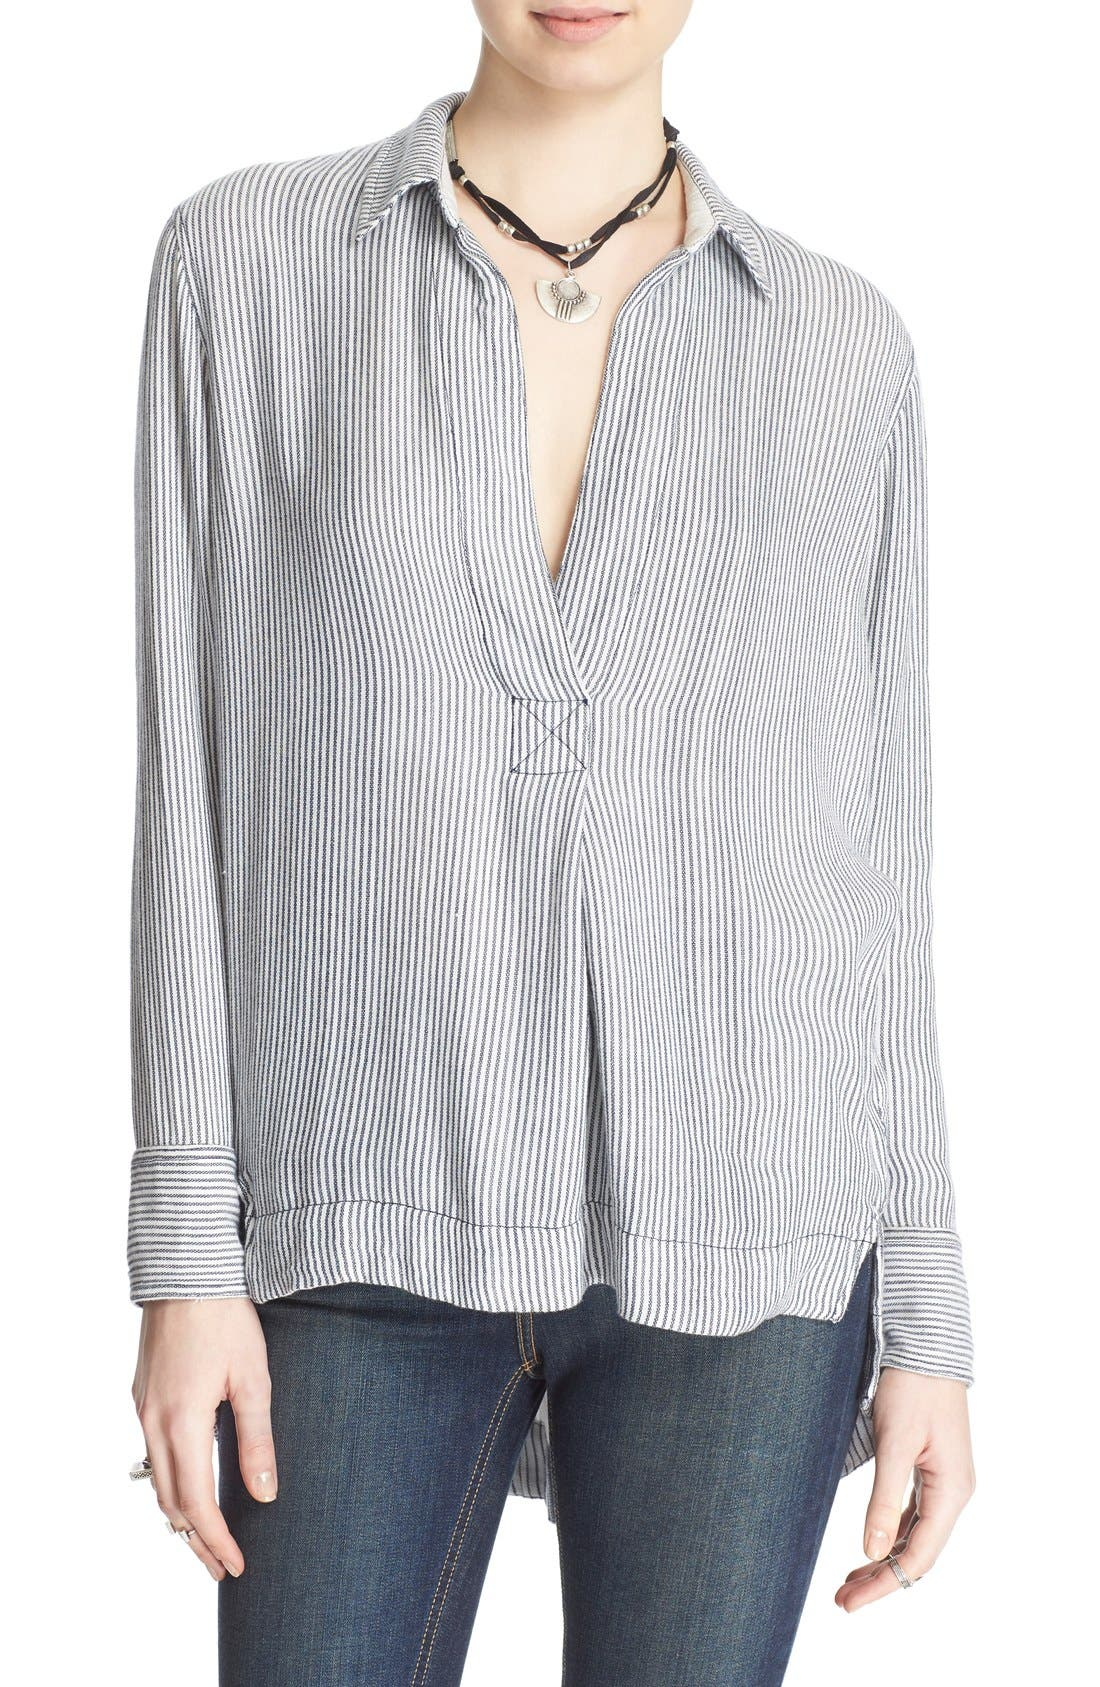 'On the Road' Stripe Tunic Top,                             Main thumbnail 1, color,                             020